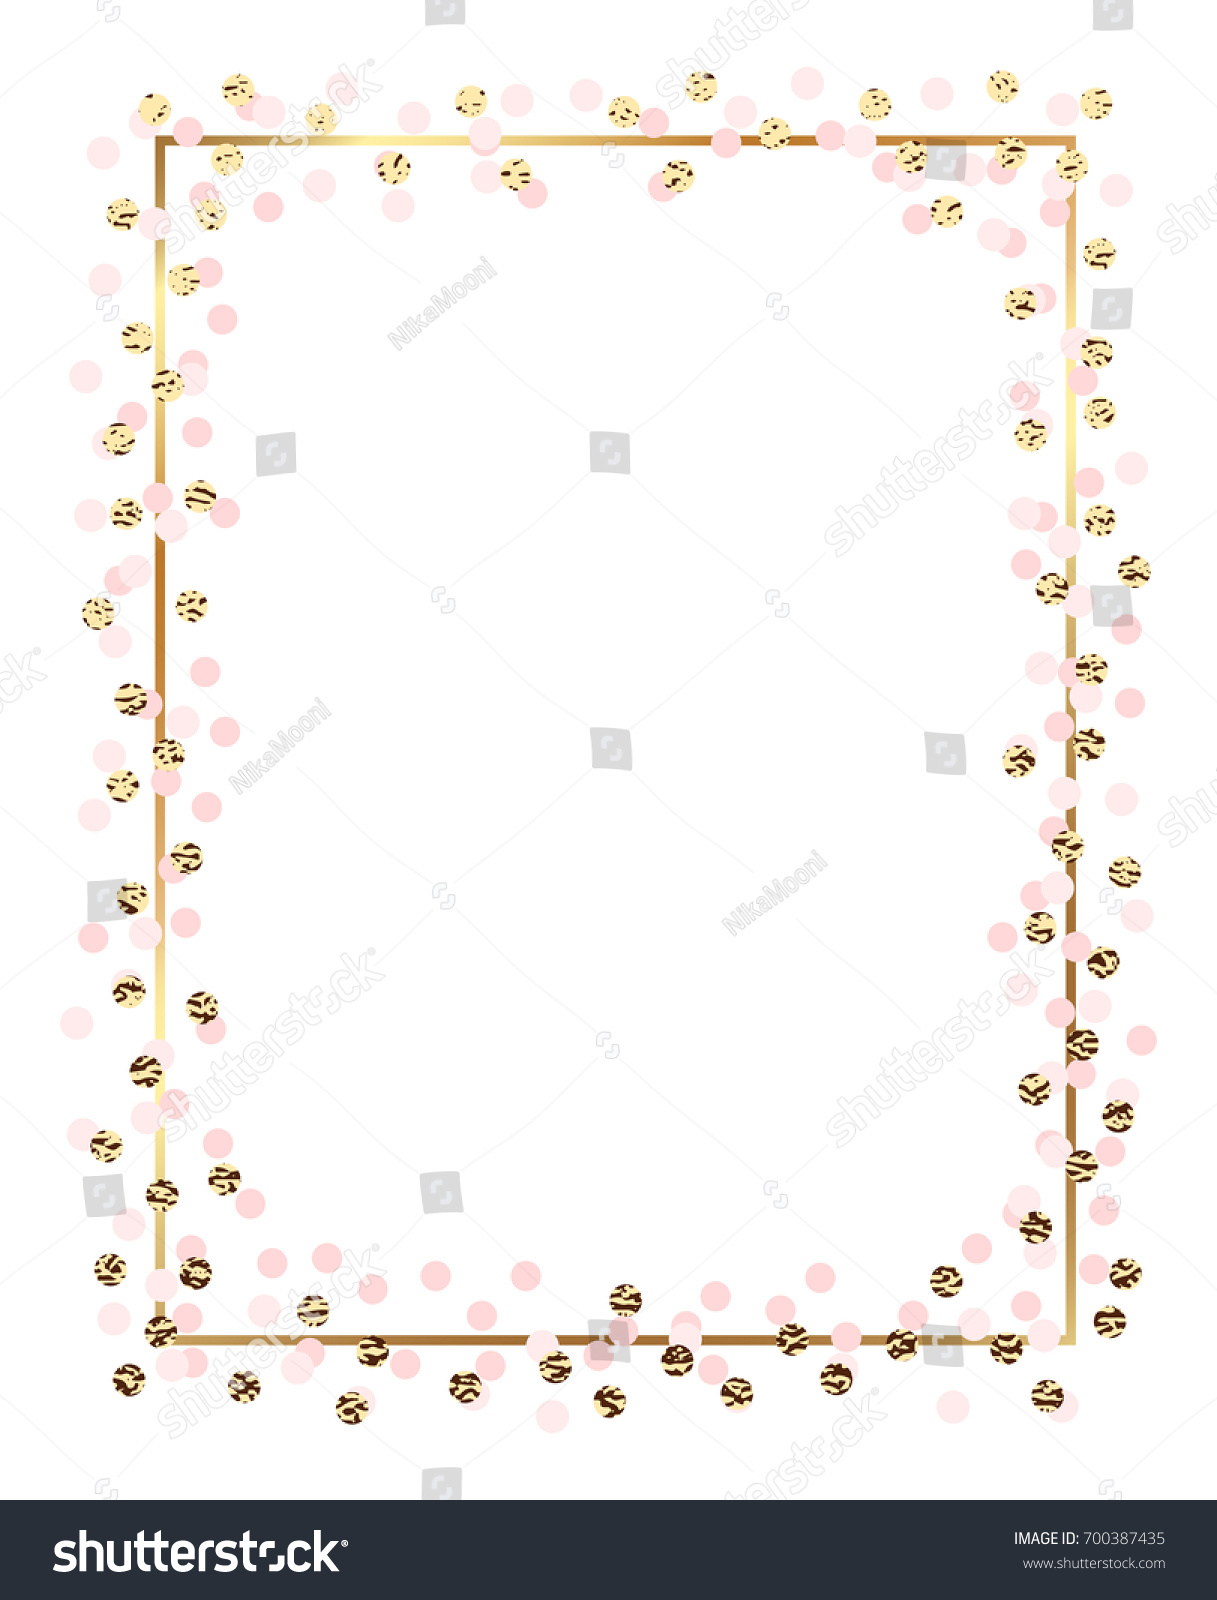 7c24e37bec0 Minimalist Gold Frame Design Golden Glitter Stock Vector (Royalty ...